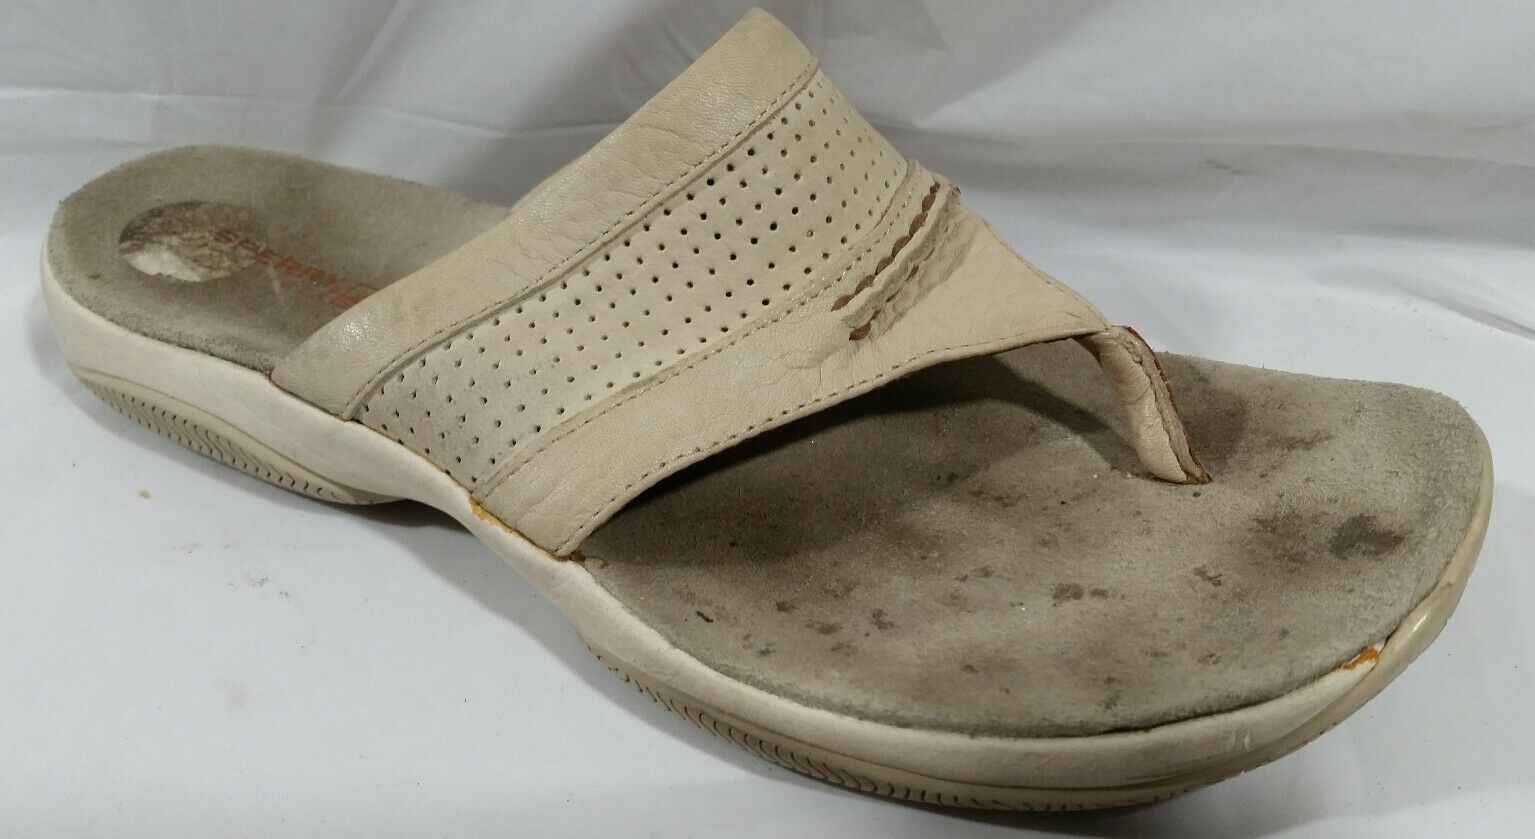 Sperry Womens 6 M Flip Beige Flop Thong Sandals White Beige Flip Leather Open Toe Summer 3cc833